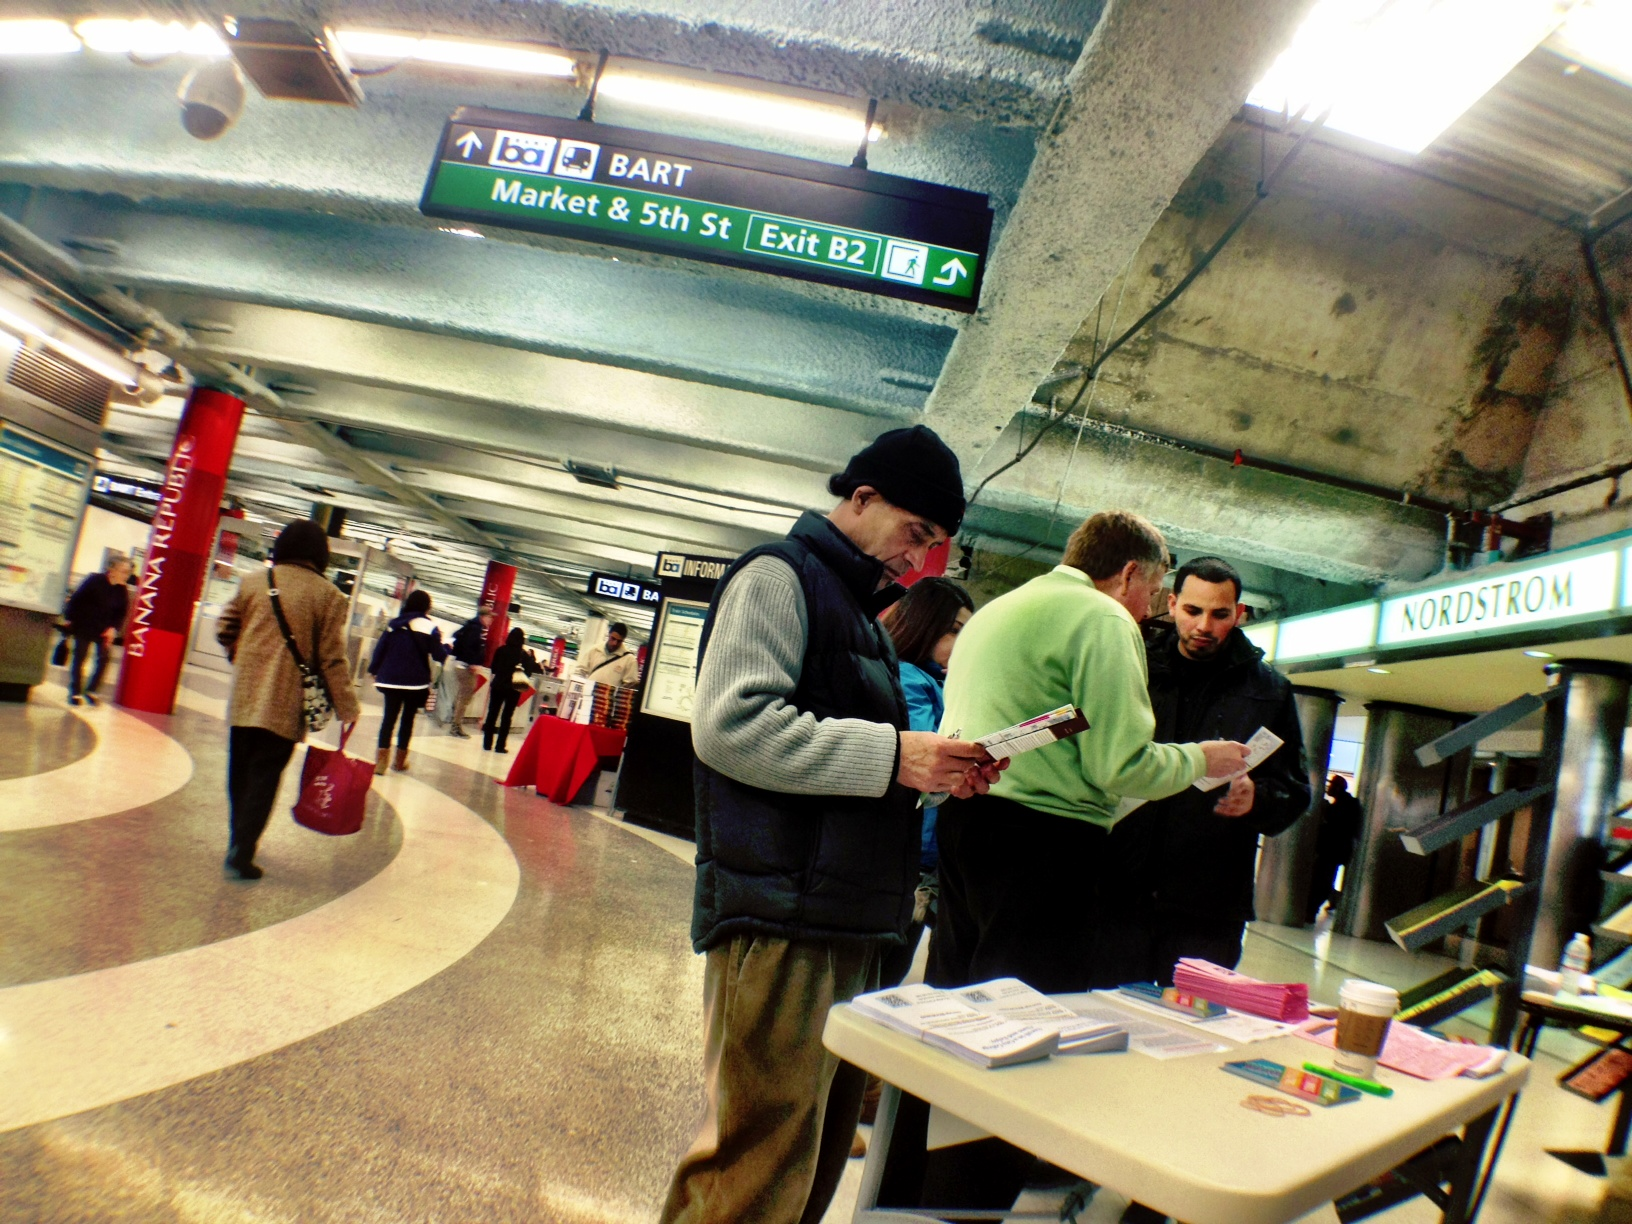 CCSF teachers recruit students from BART/Muni stations